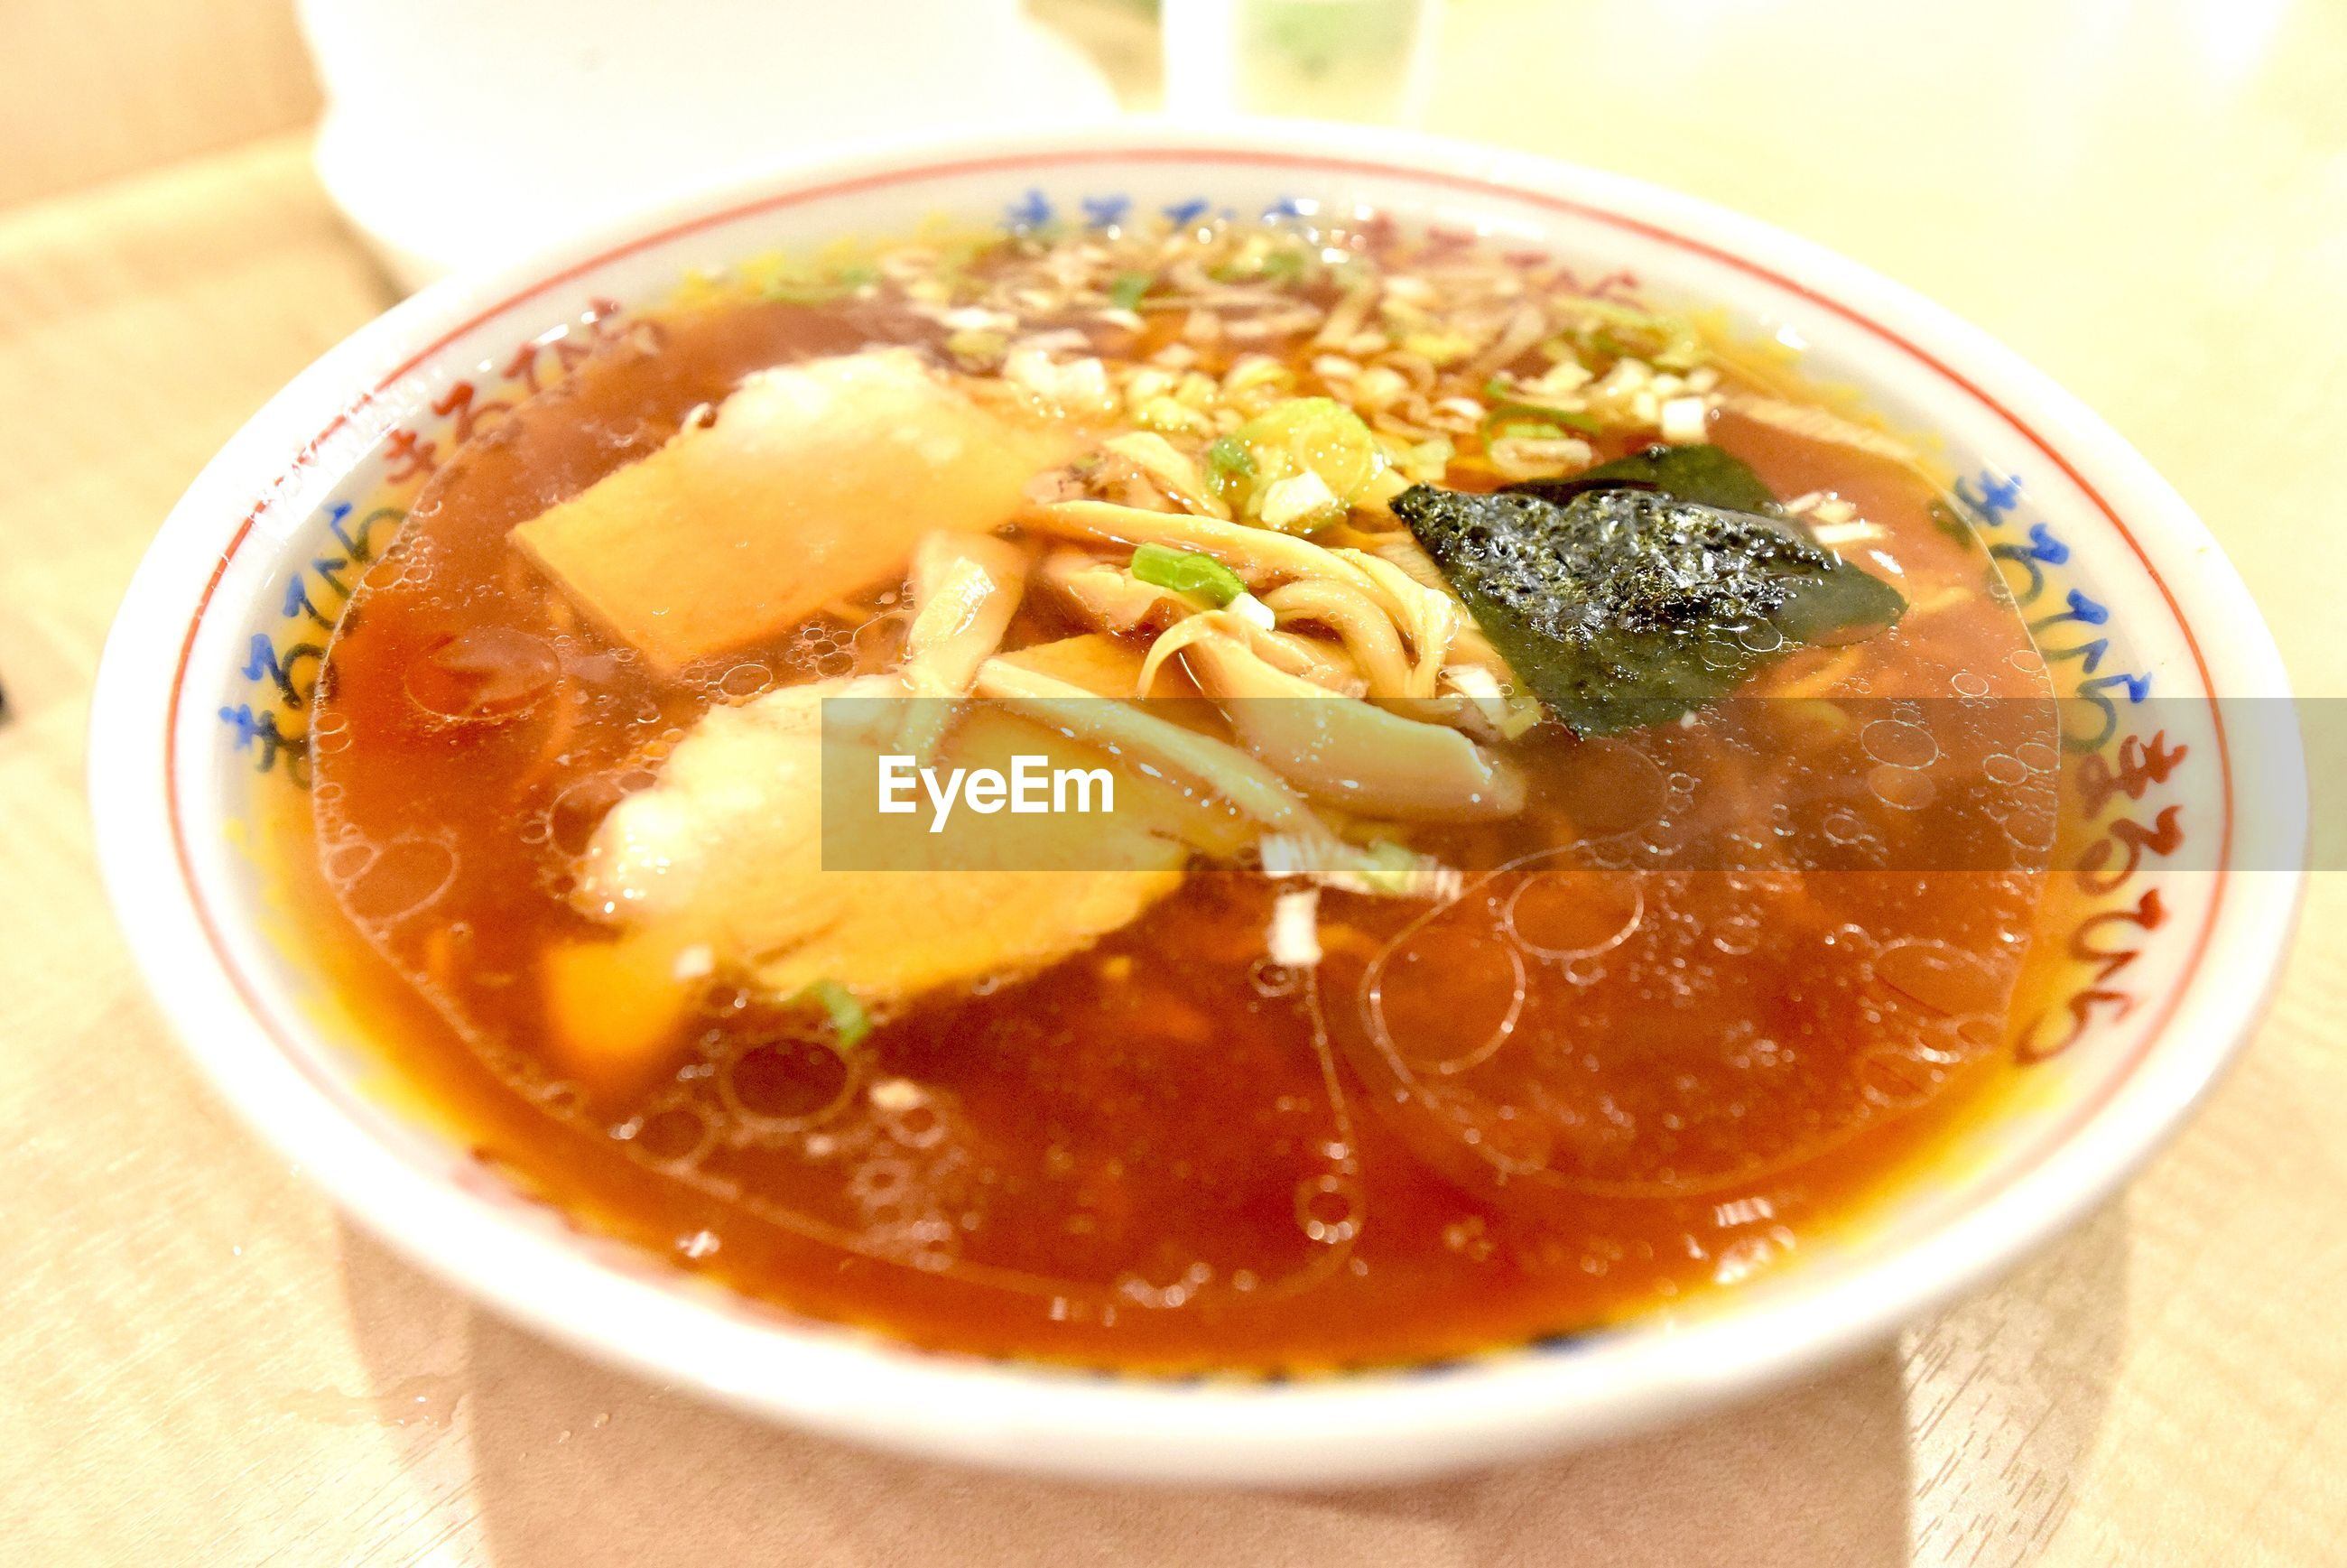 food and drink, food, ready-to-eat, bowl, soup, healthy eating, freshness, close-up, wellbeing, indoors, pasta, table, italian food, serving size, asian food, no people, meat, still life, high angle view, soup bowl, noodle soup, japanese food, vegetable soup, garnish, crockery, chinese food